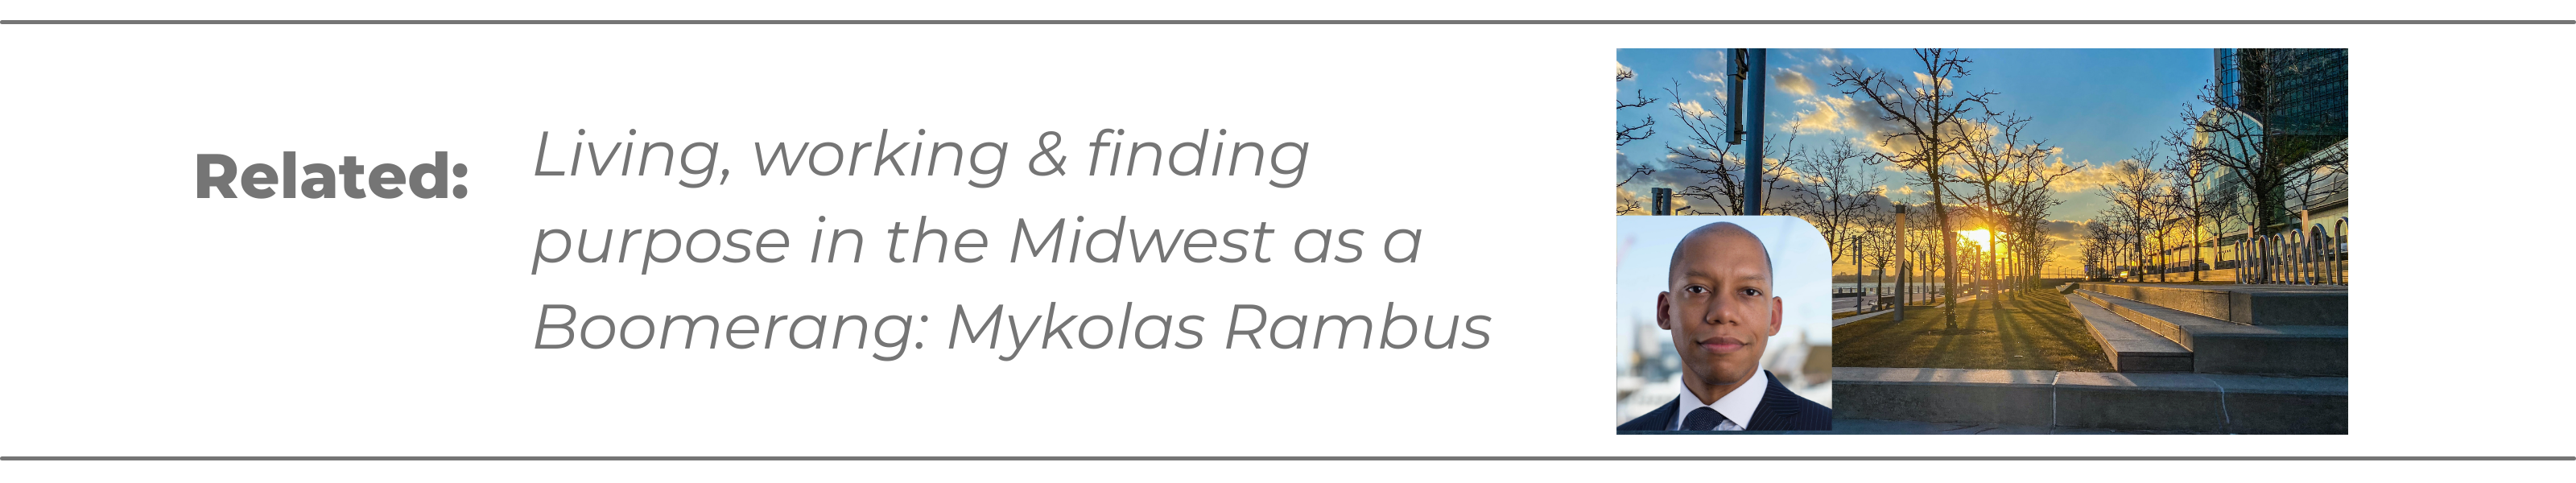 Living, working & finding purpose in the Midwest as a Boomerang: Mykolas Rambus